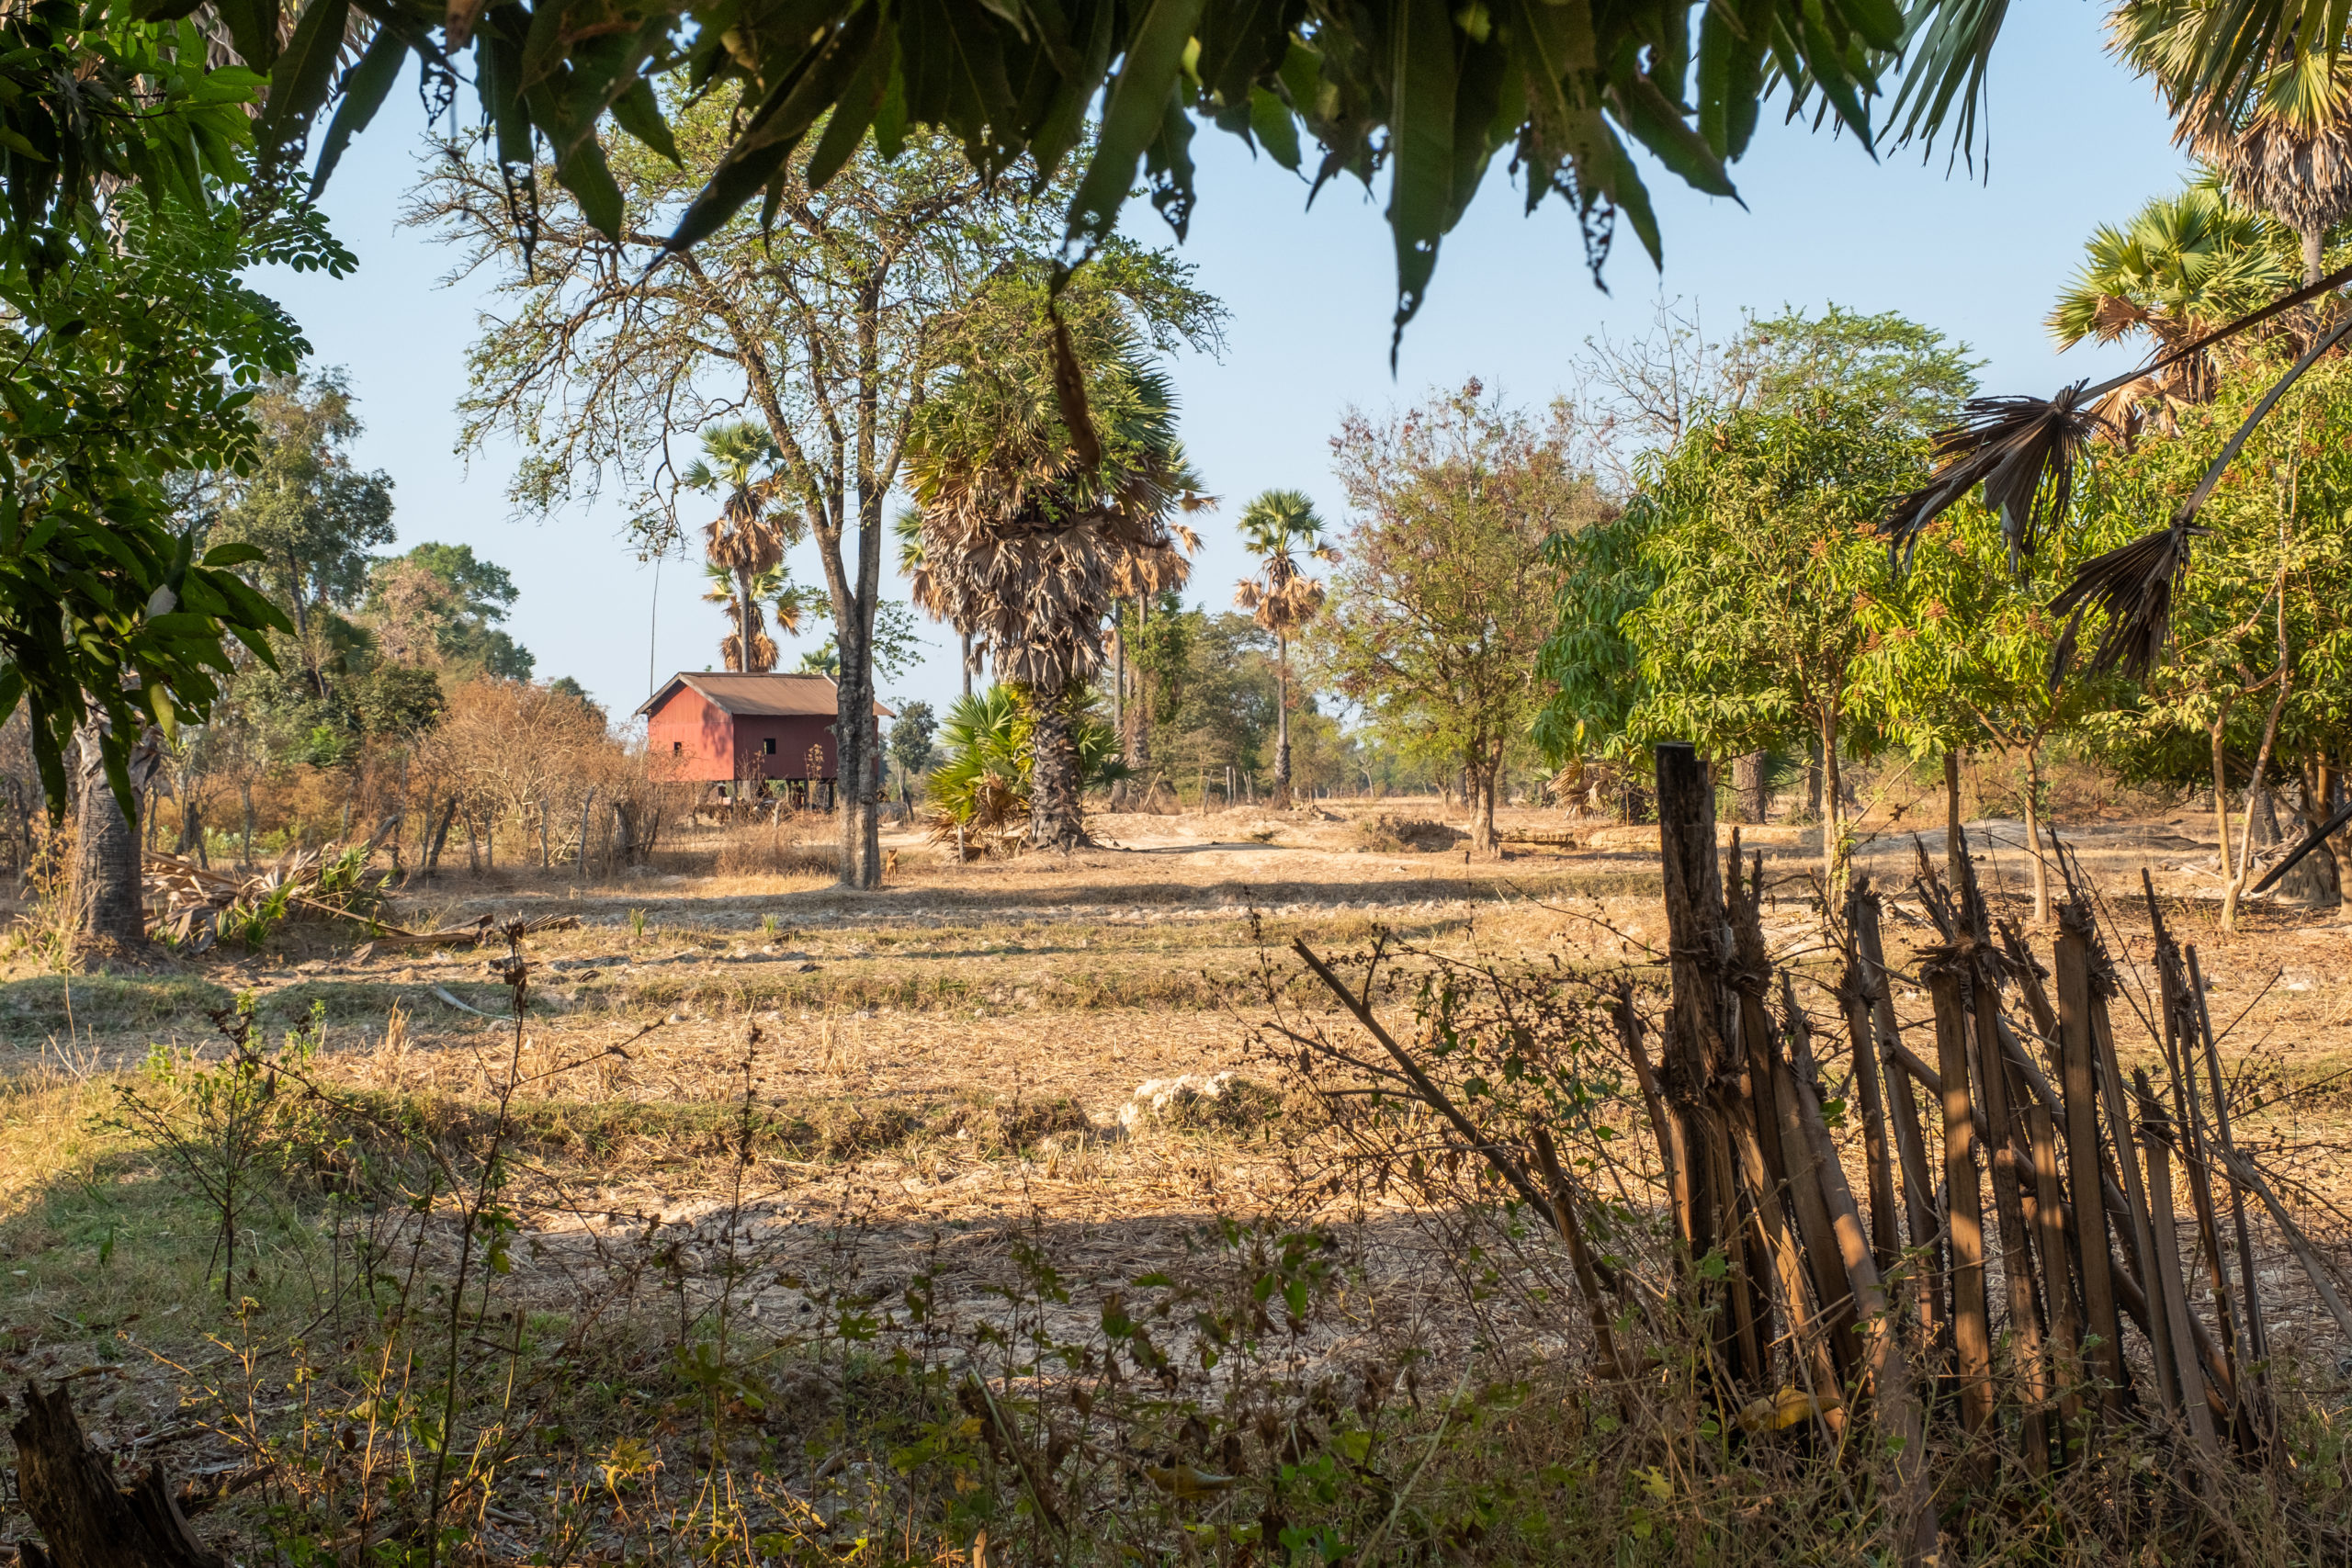 Villages cambodia forest resource